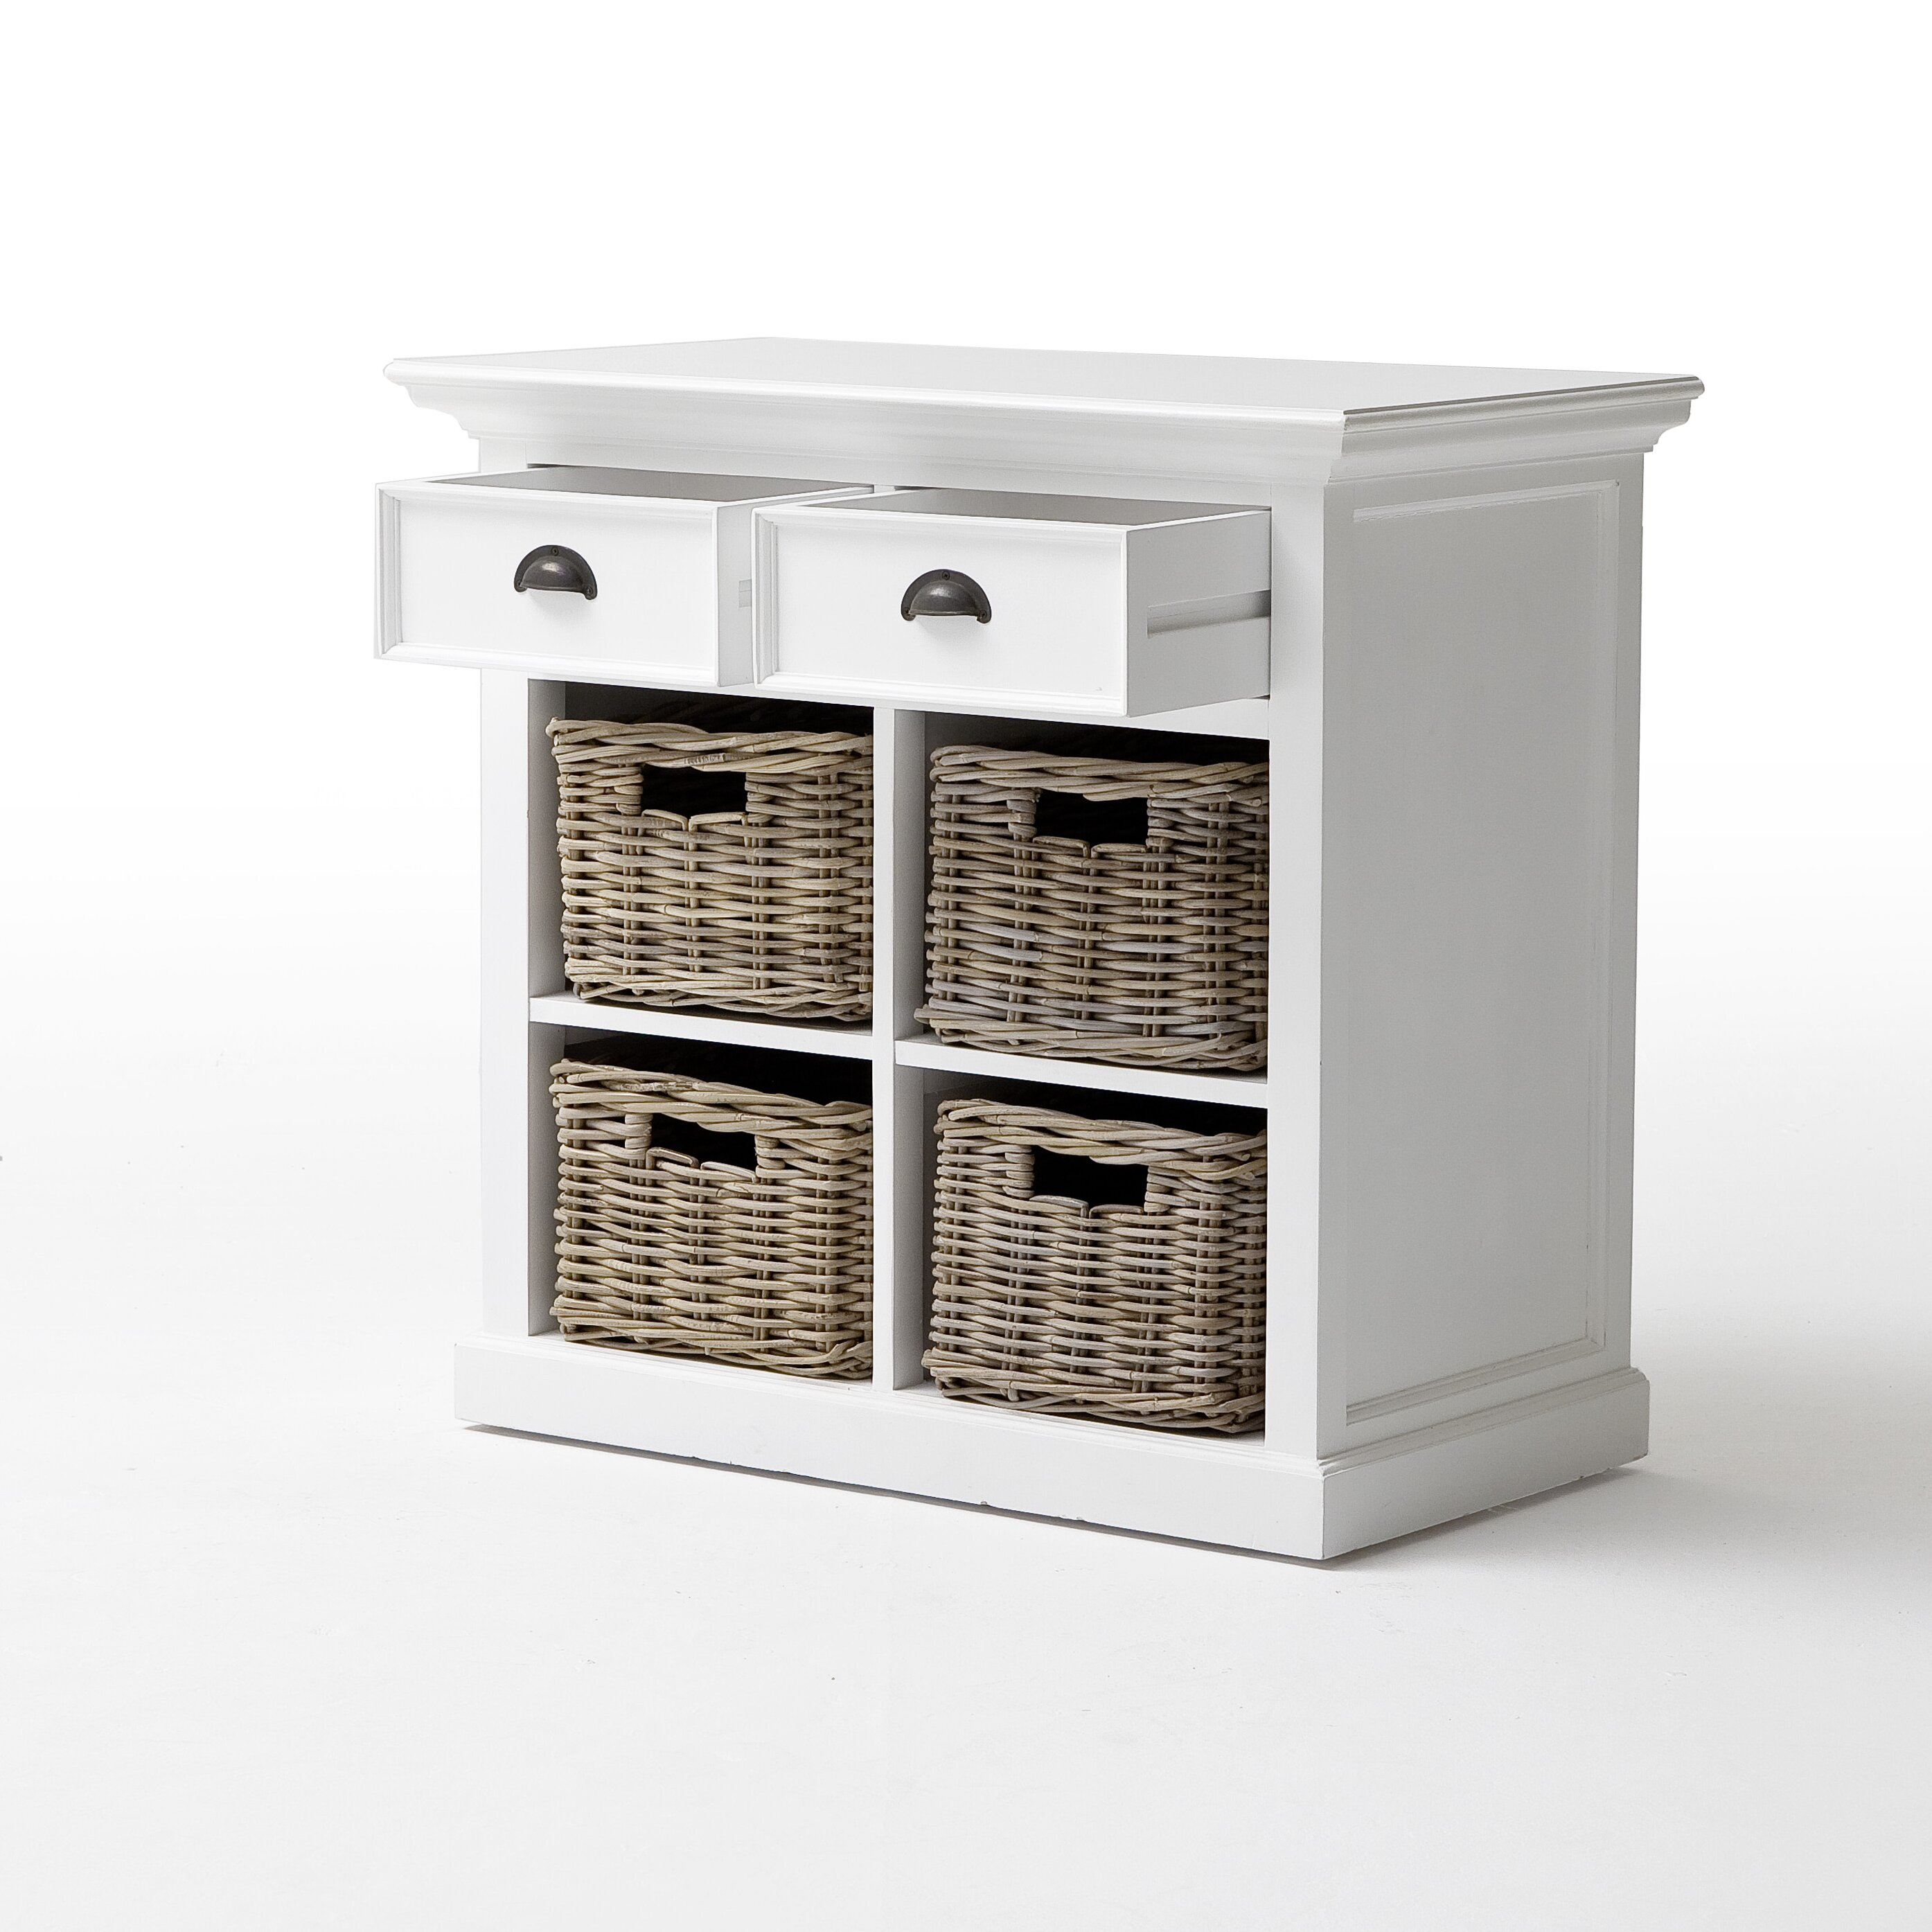 NovaSolo Halifax Cabinet & Reviews | Wayfair